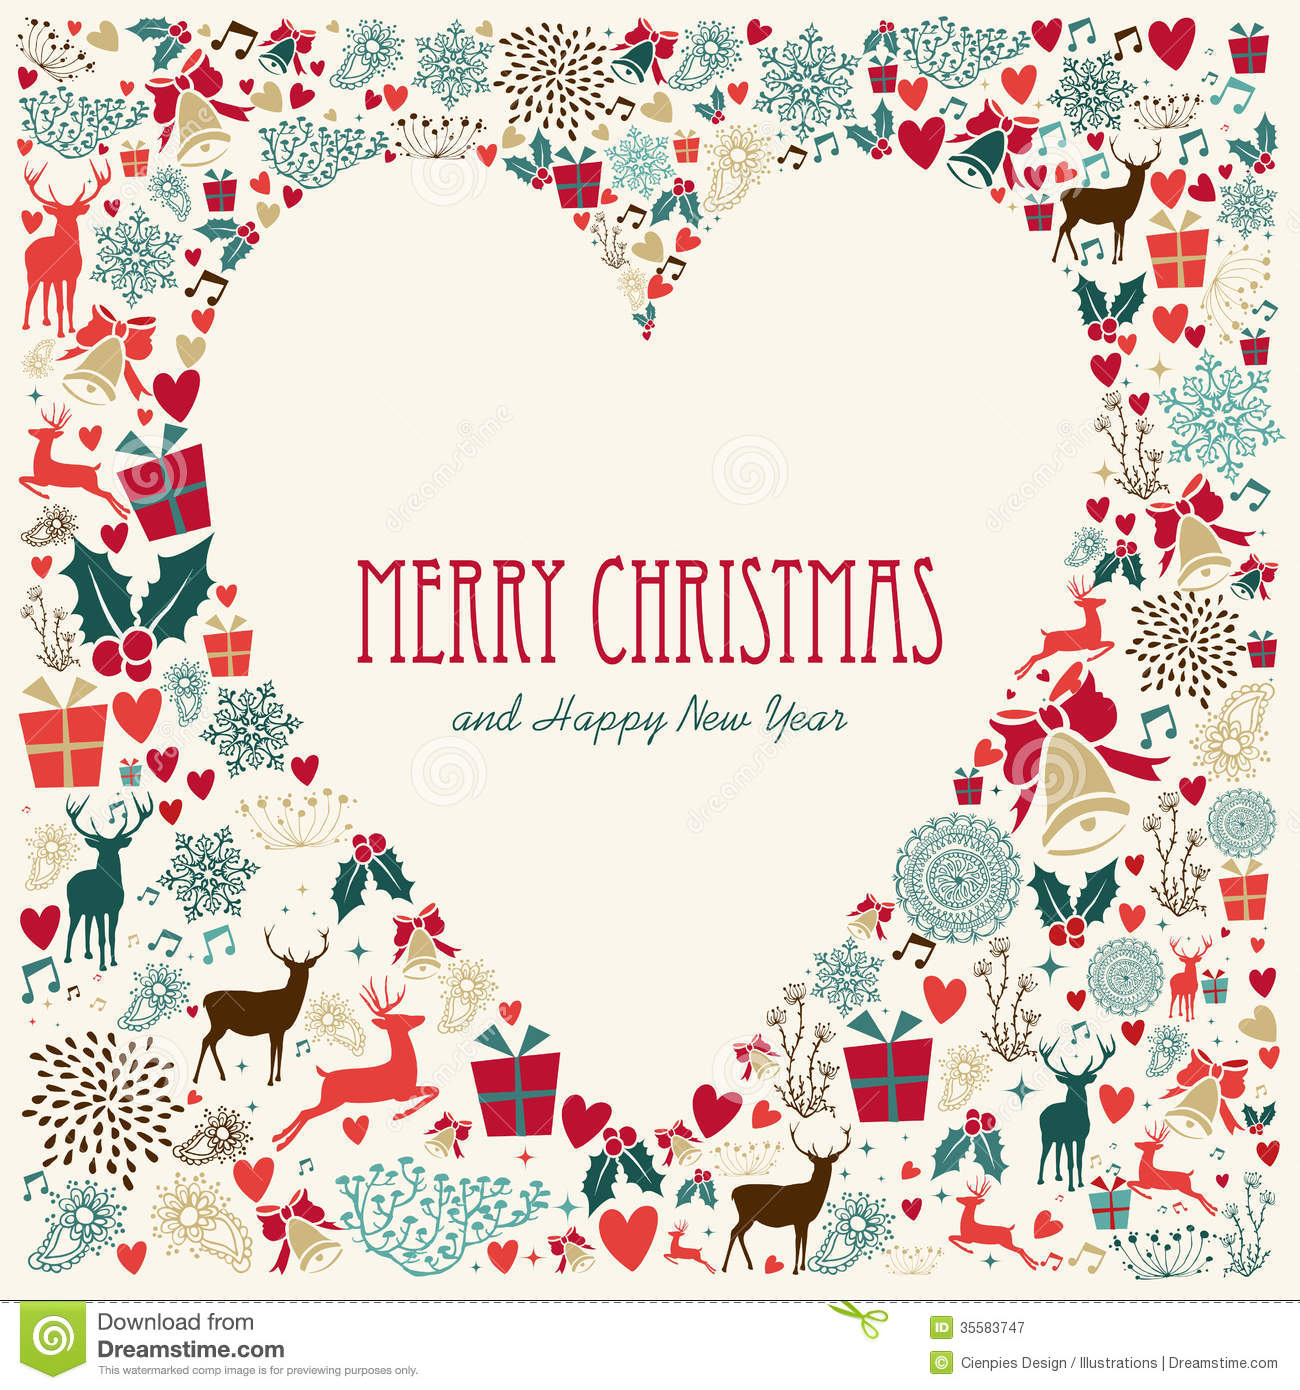 Vintage Merry Christmas Love Heart Card Stock Vector - Illustration ...